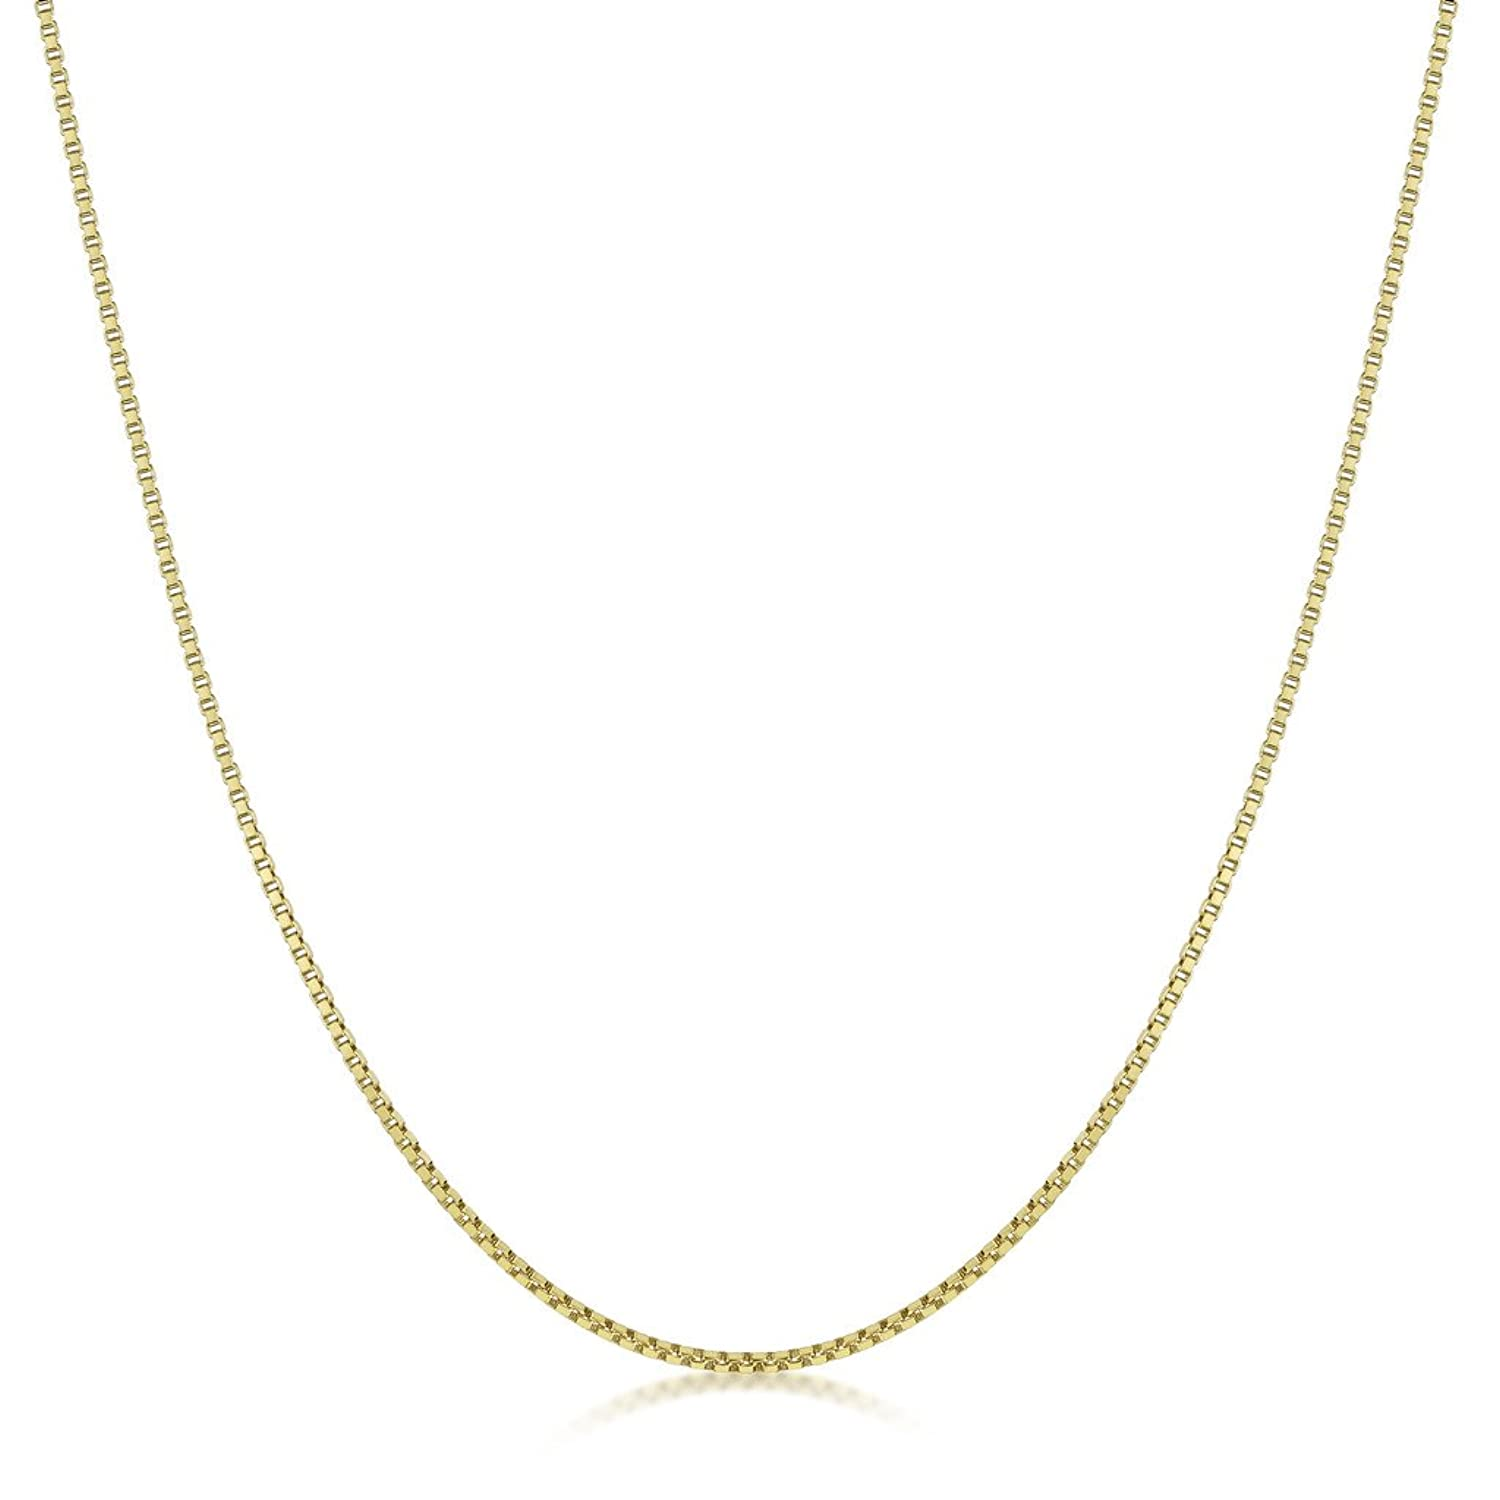 Amberta 18K Gold Plated on 925 Sterling Silver 1.3 mm Curb Chain Necklace 14